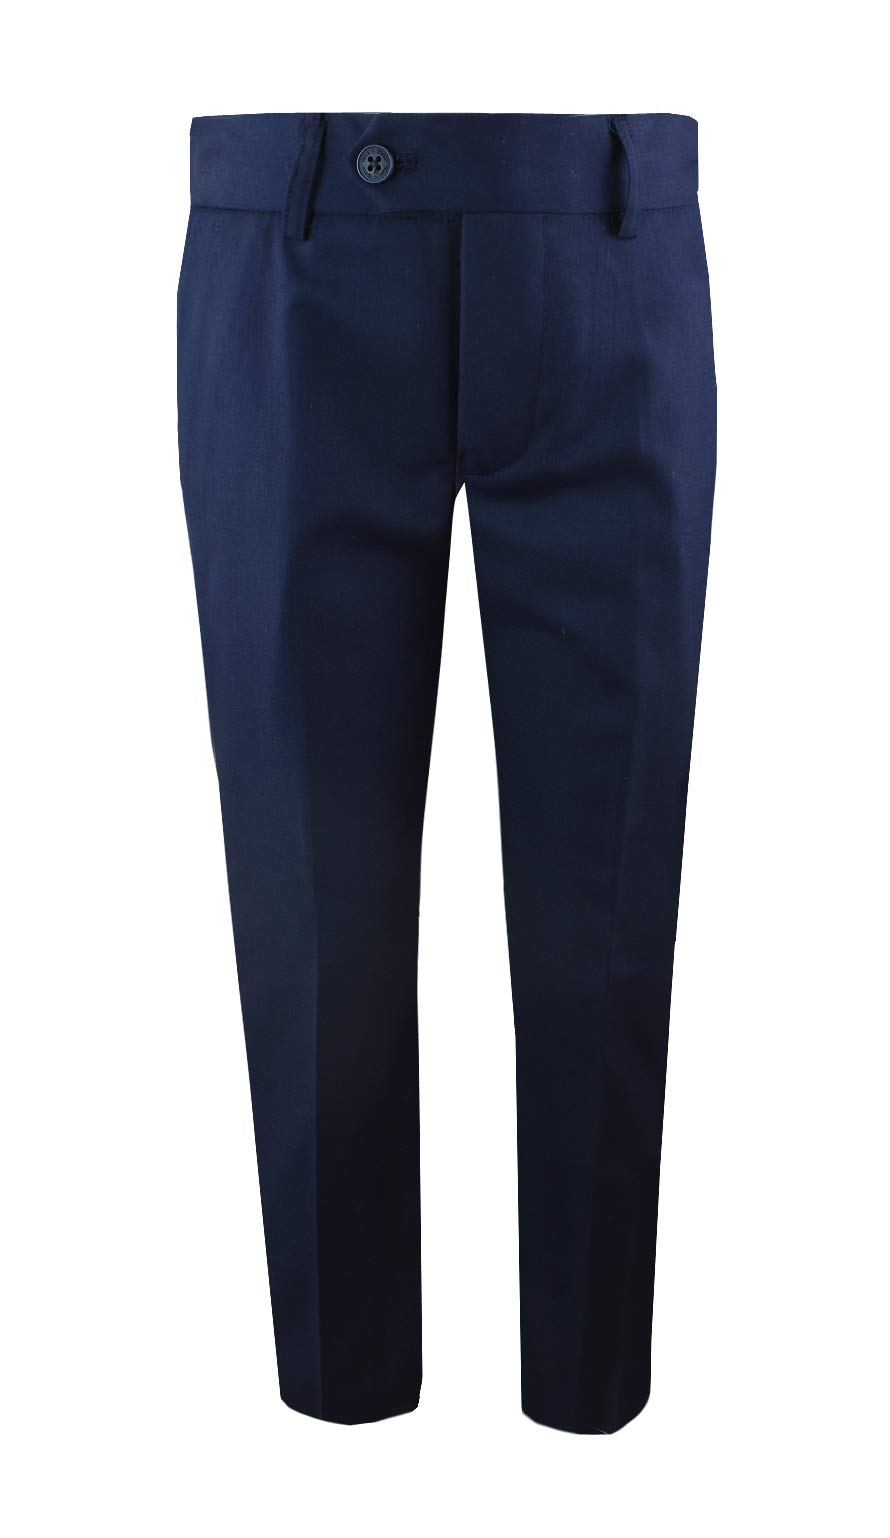 Black n Bianco Boys' First Class Slim Fit Trousers Dress Pants Gently Tapered Flat Front - Presented by Baby Muffin (4T, Navy)